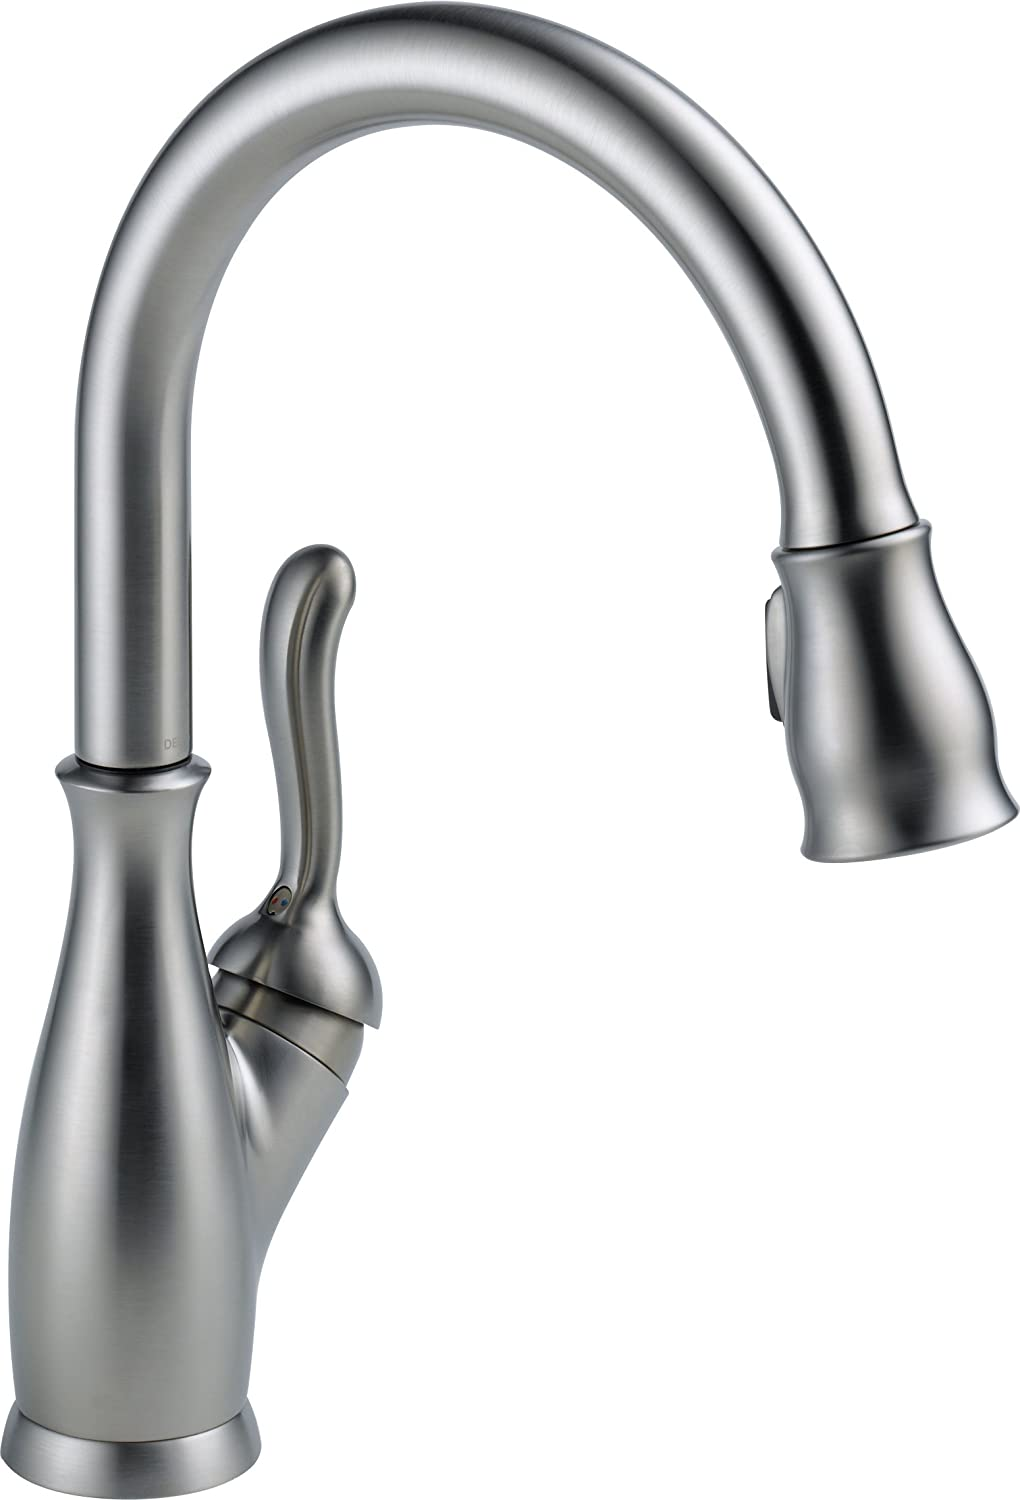 Delta Faucet 9178-AR-DST Leland Single Handle Pull-Down Kitchen Faucet, Arctic Stainless